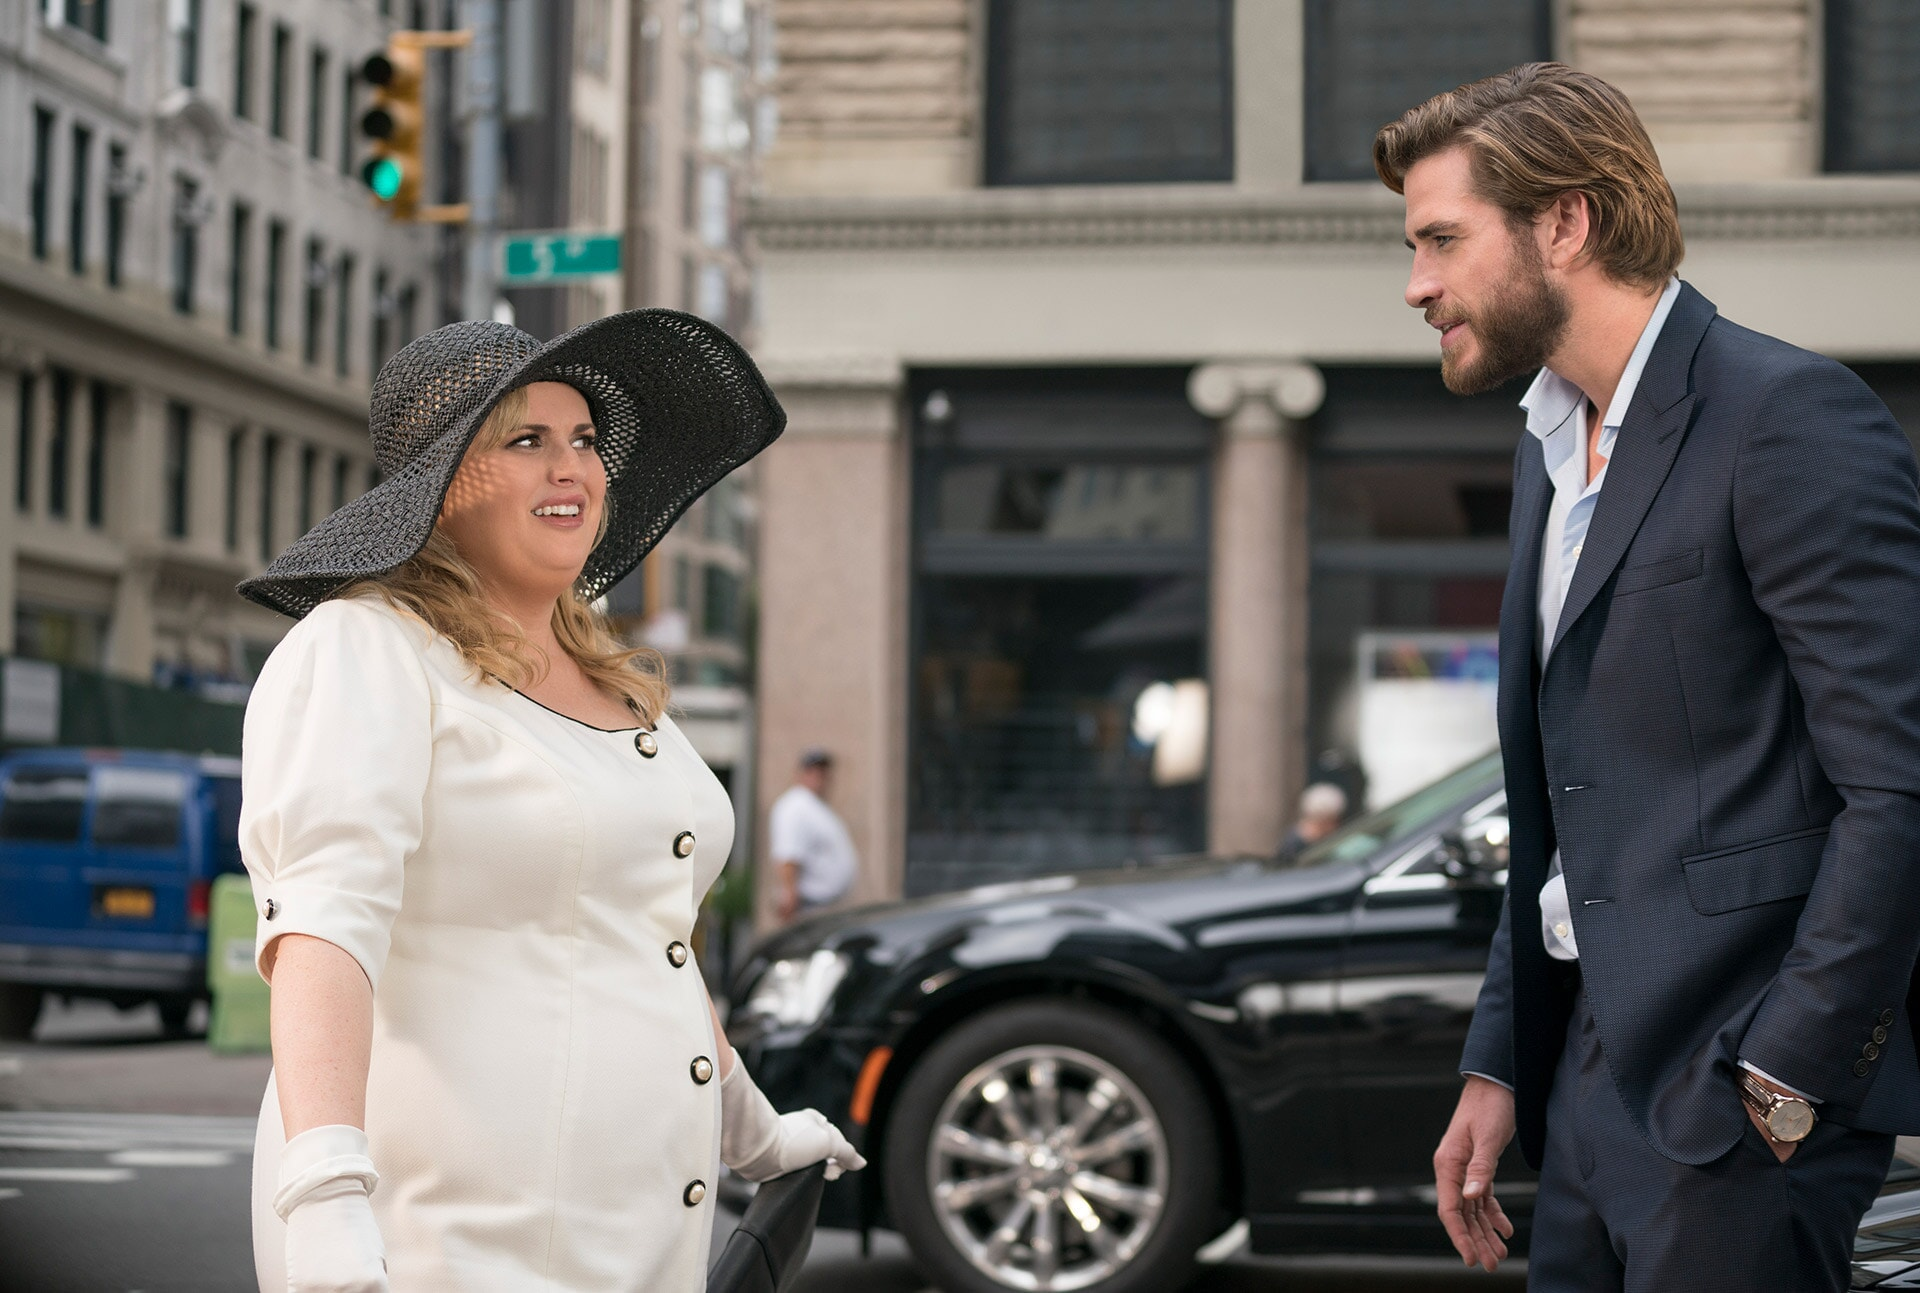 (L-R) REBEL WILSON as Natalie and LIAM HEMSWORTH as Blake